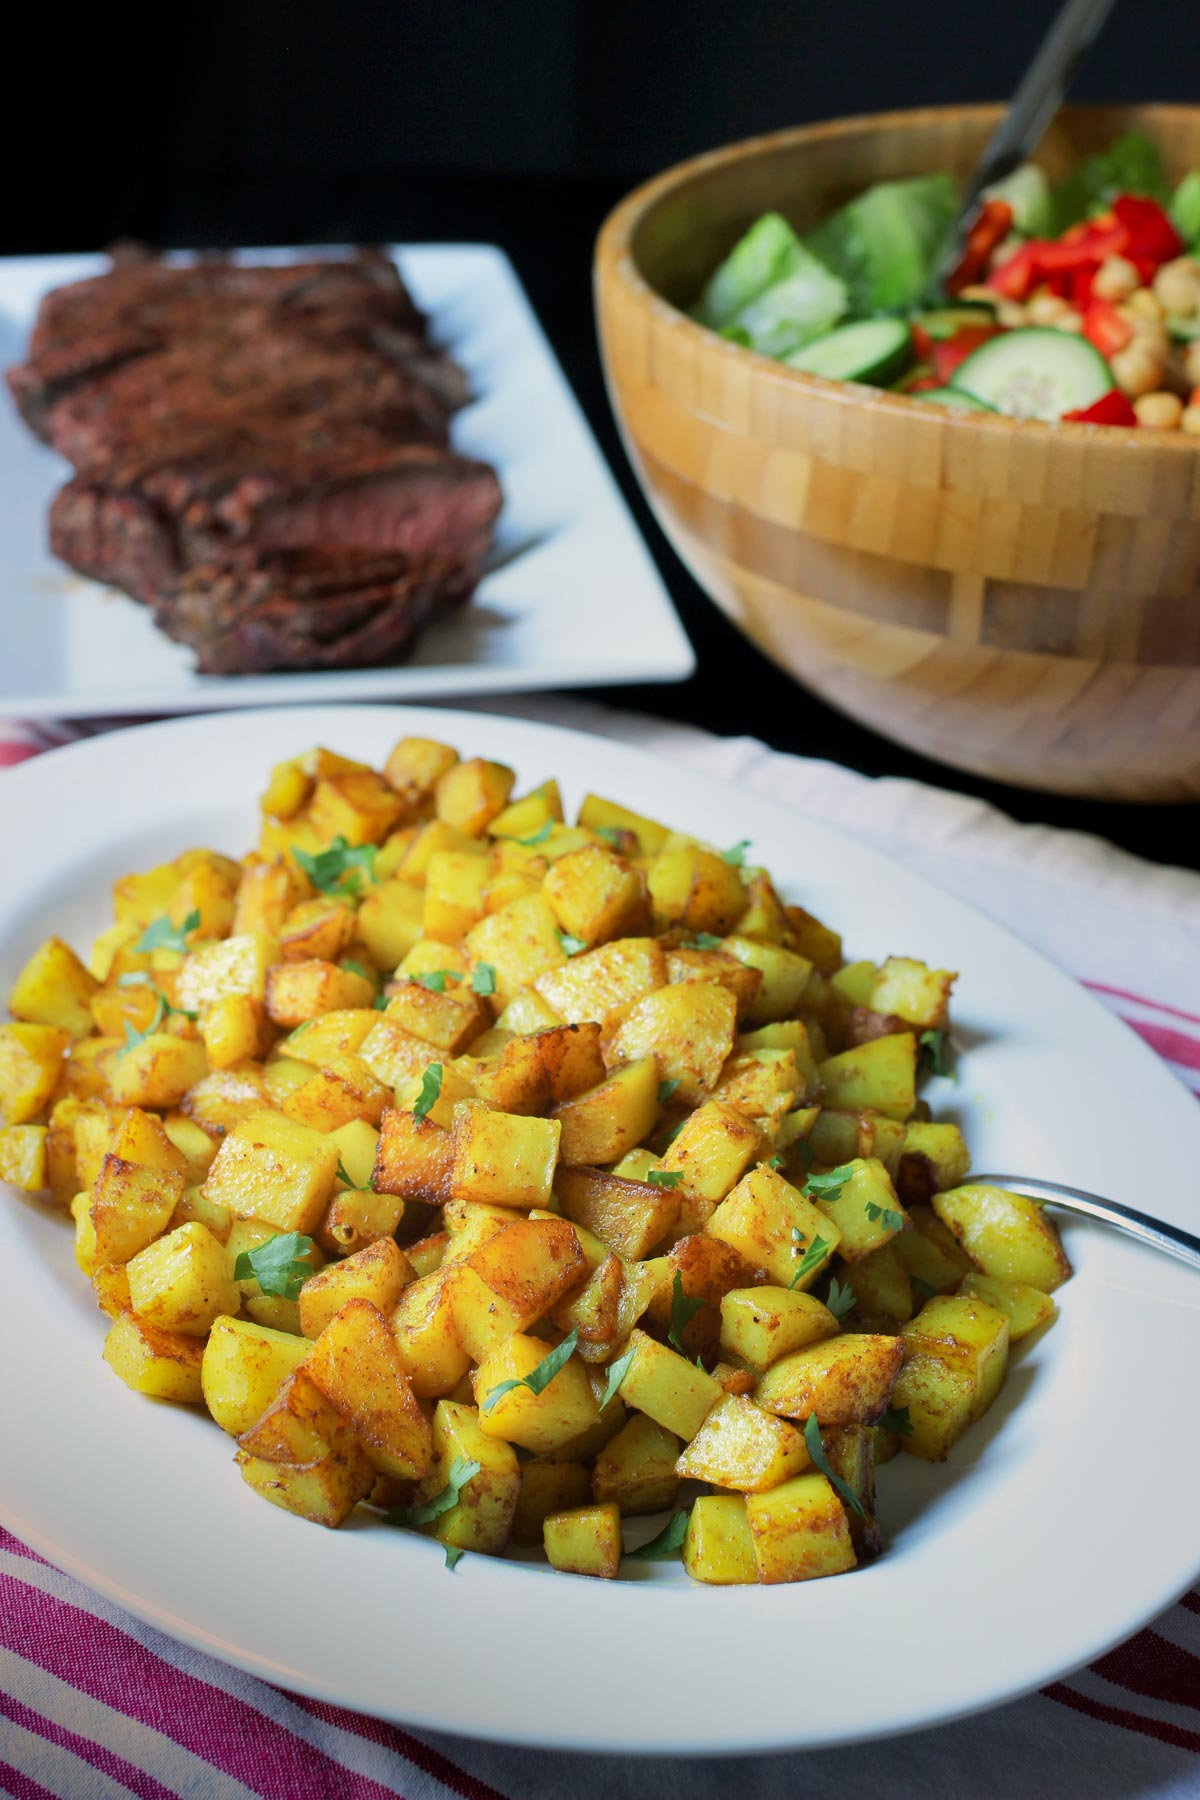 oval platter of curried potatoes on dinner table with a platter of grilled meat and a salad bowl